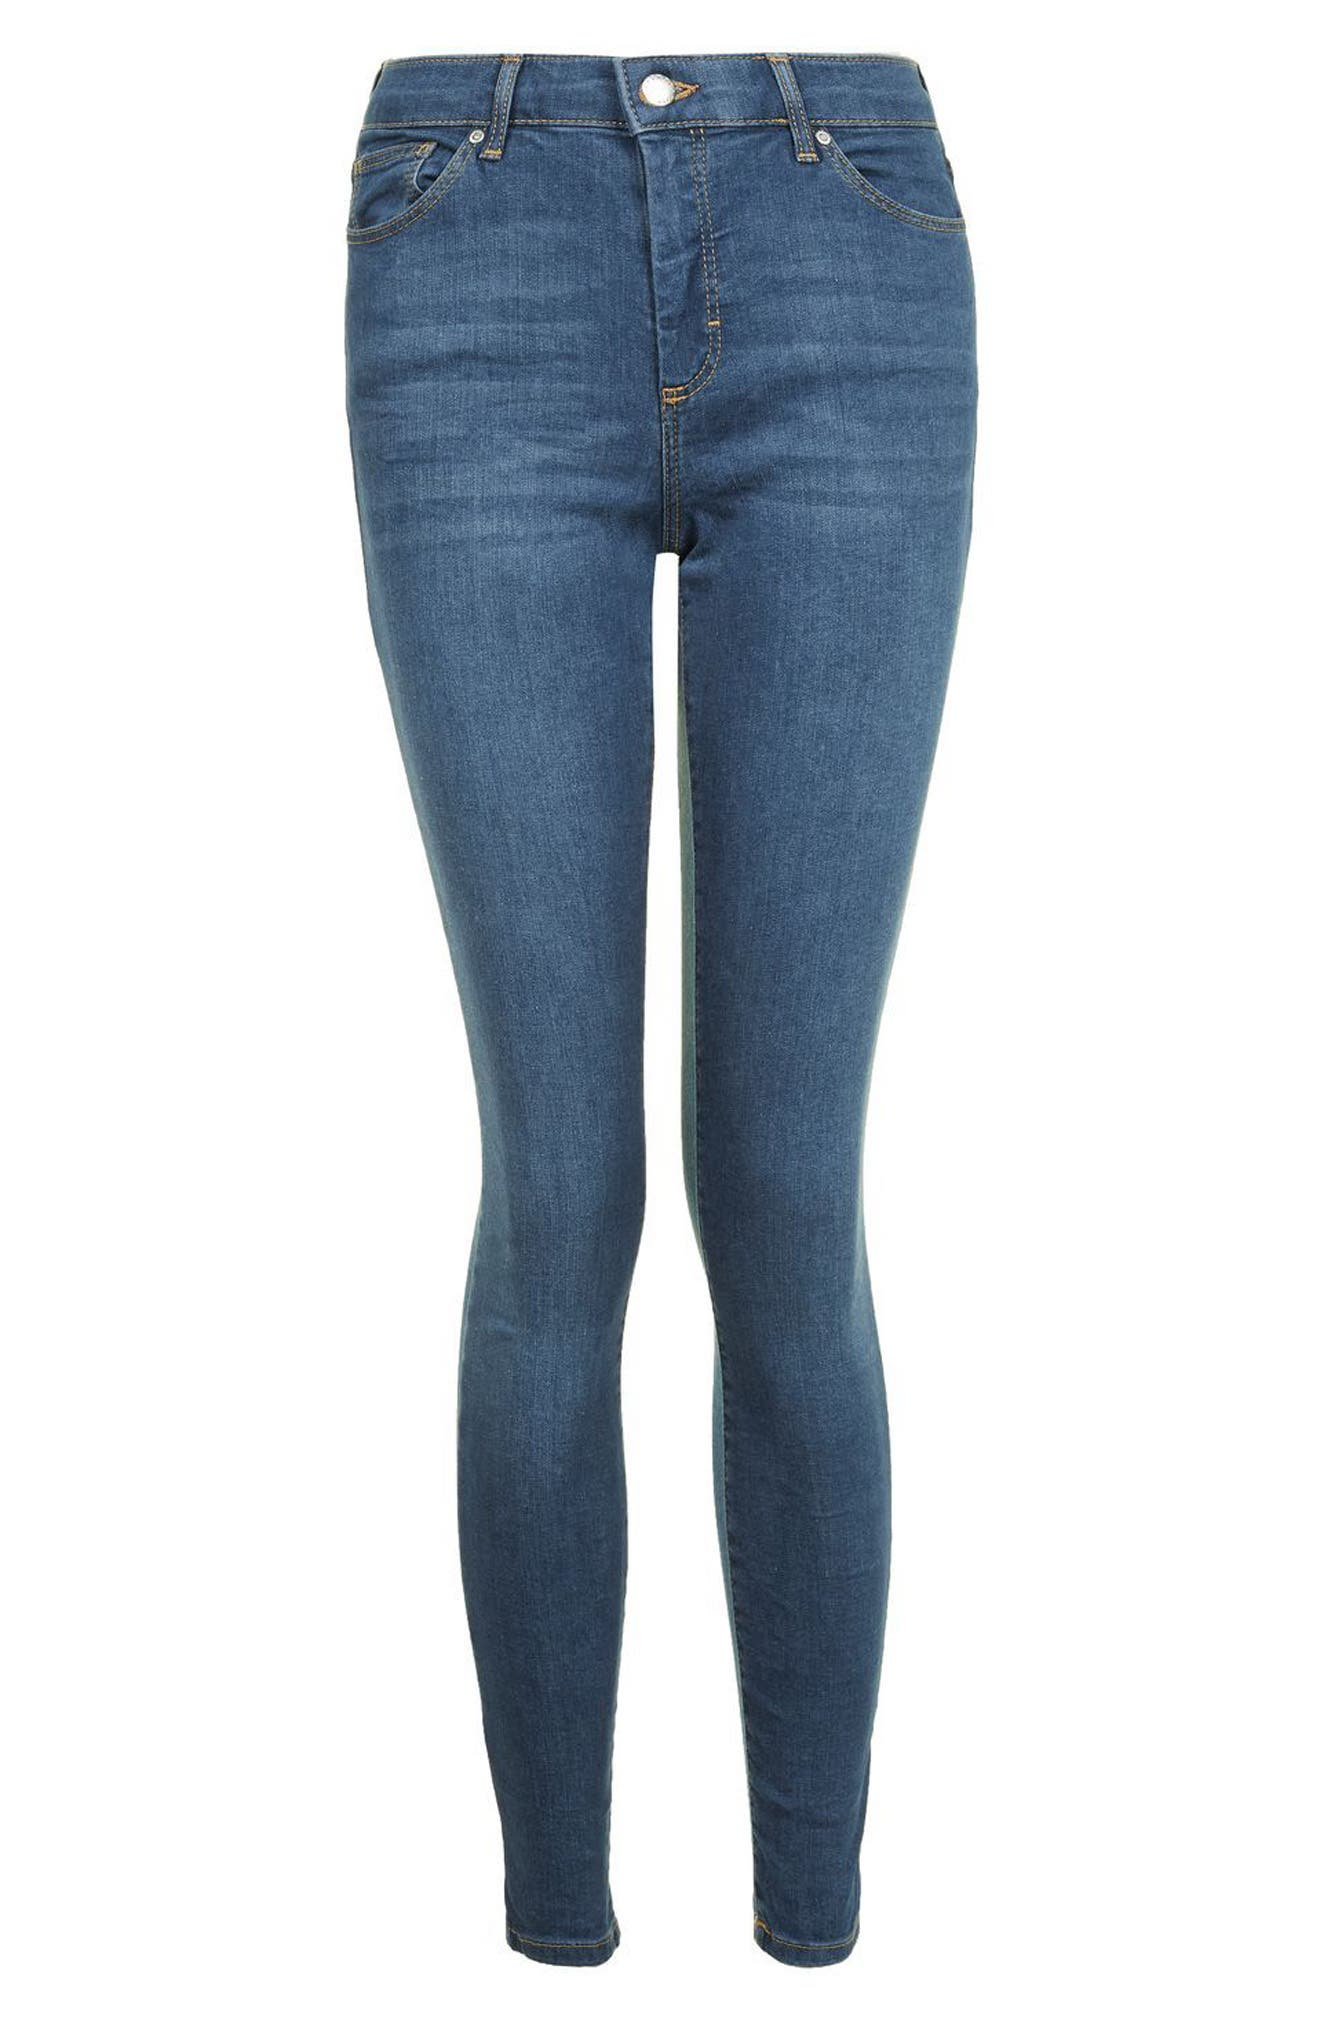 Leigh Skinny Jeans,                             Alternate thumbnail 5, color,                             400